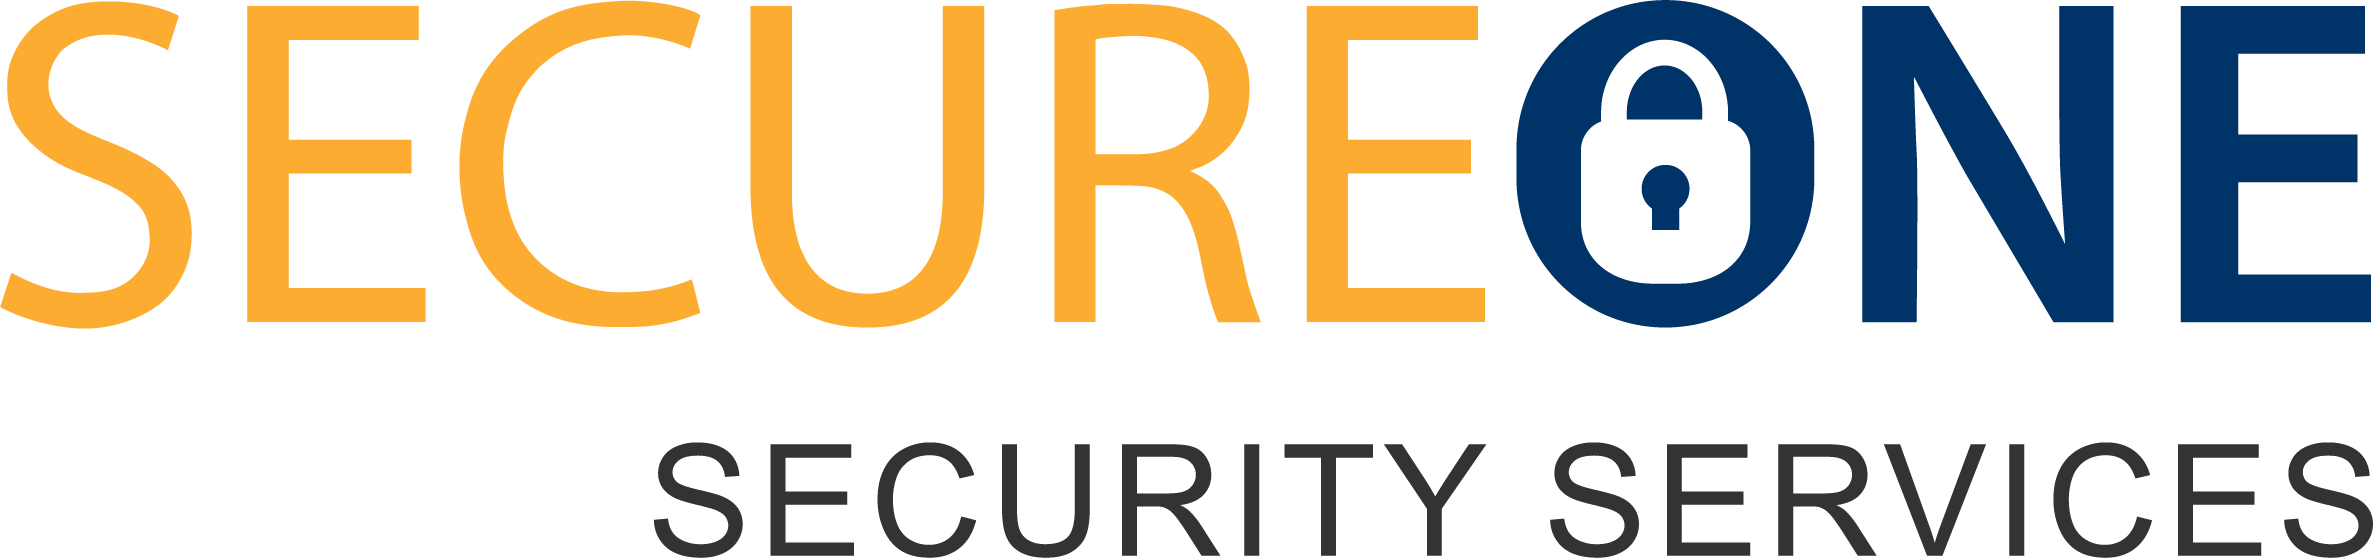 Secureone Security Services